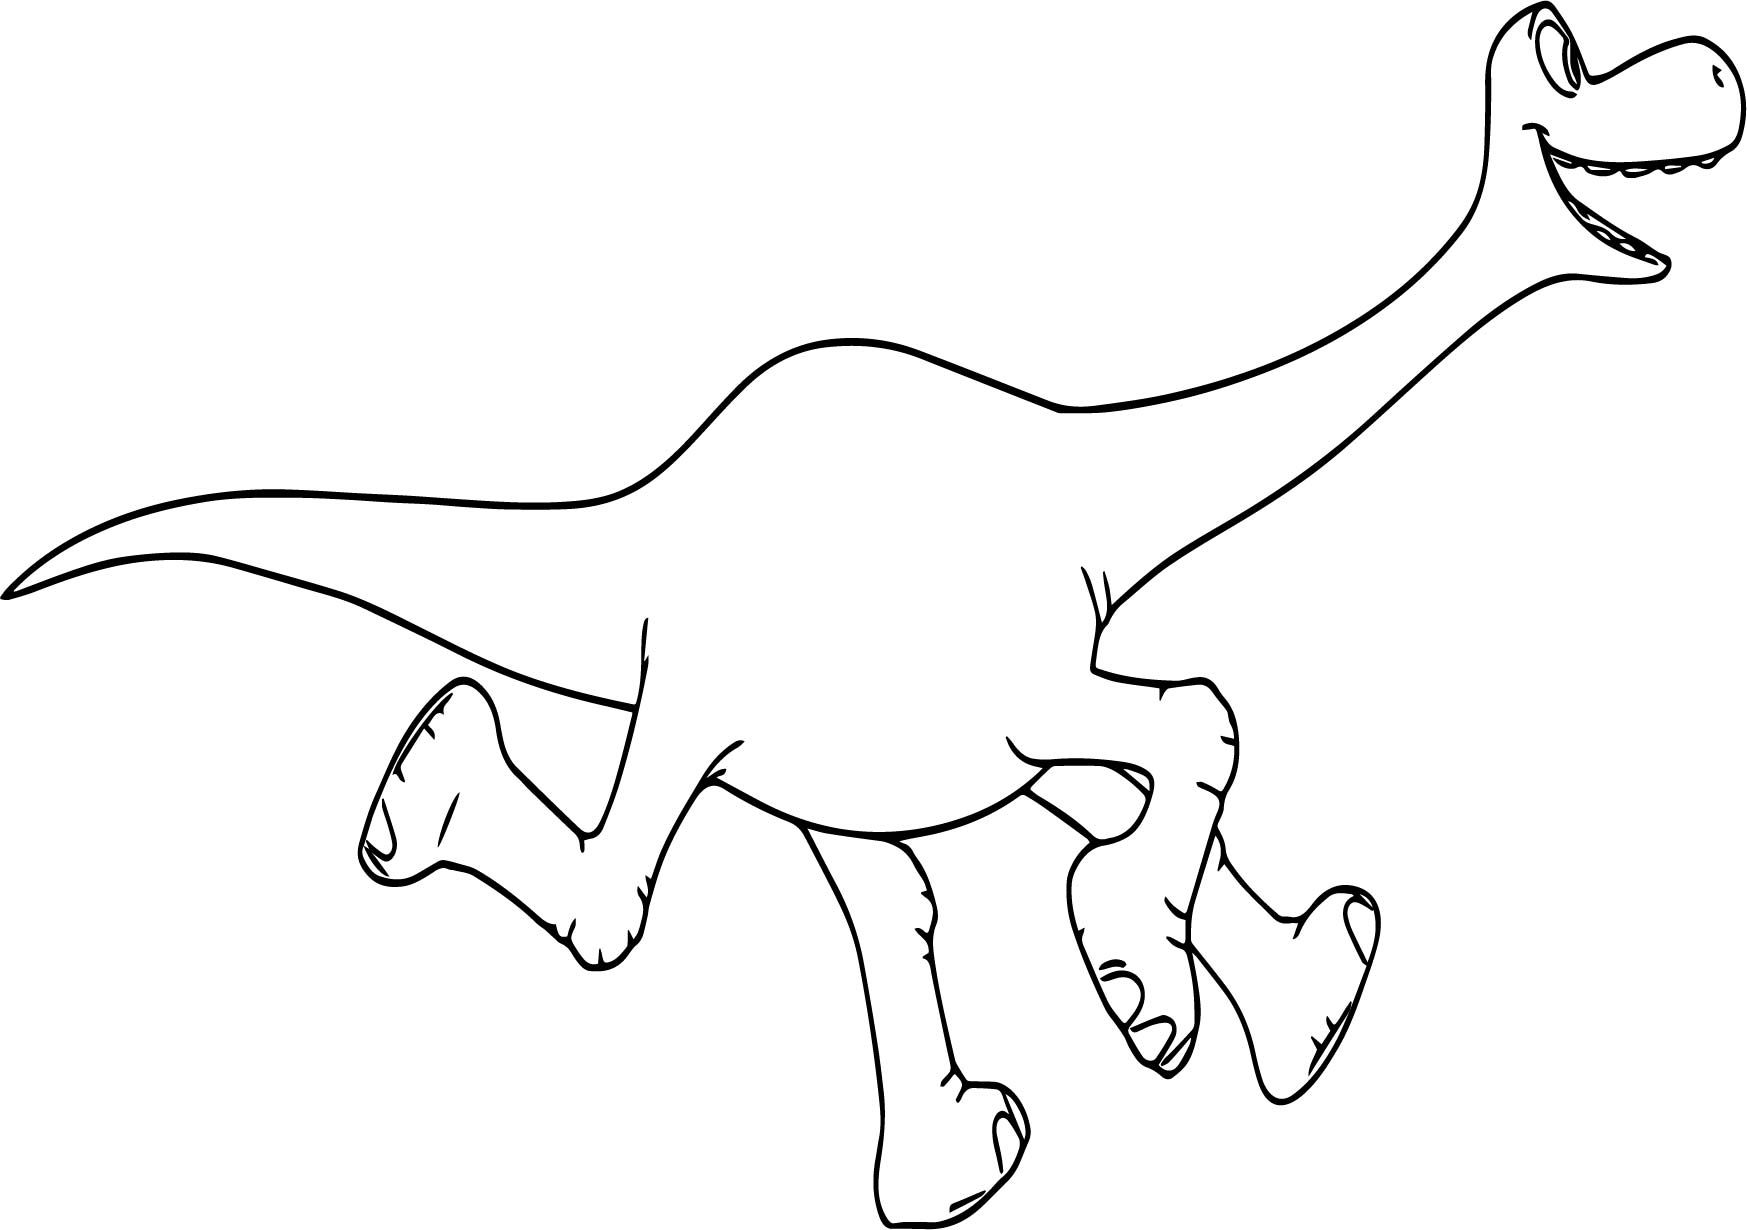 The Good Dinosaur Disney Arlo Run Cartoon Coloring Pages